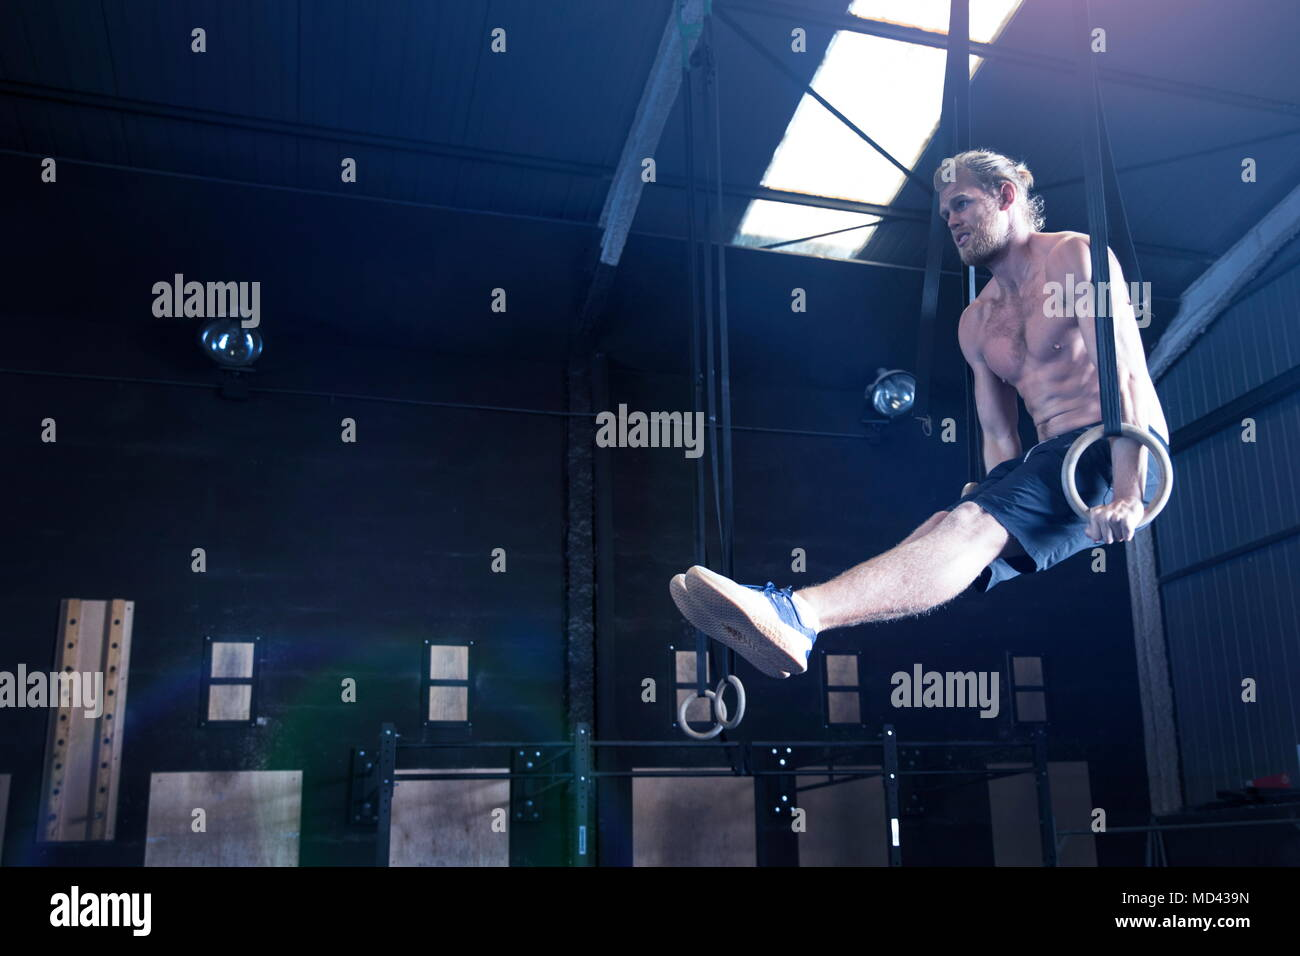 Man in gymnasium, balancing on gymnastic rings - Stock Image